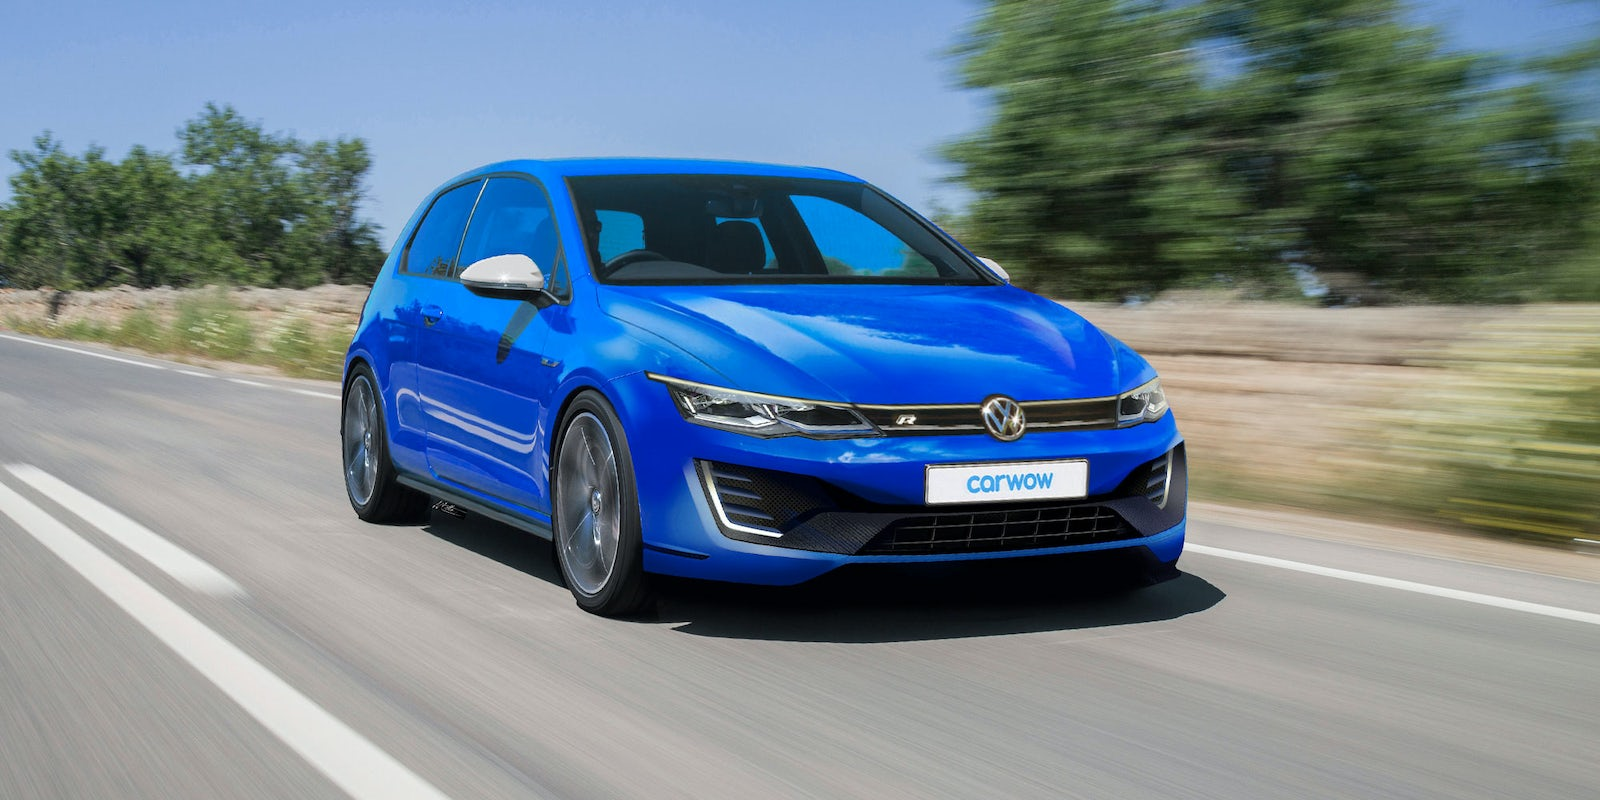 2020 VW Tiguan: Design, Specs, Price >> 2020 Vw Golf R Price Specs And Release Date Carwow